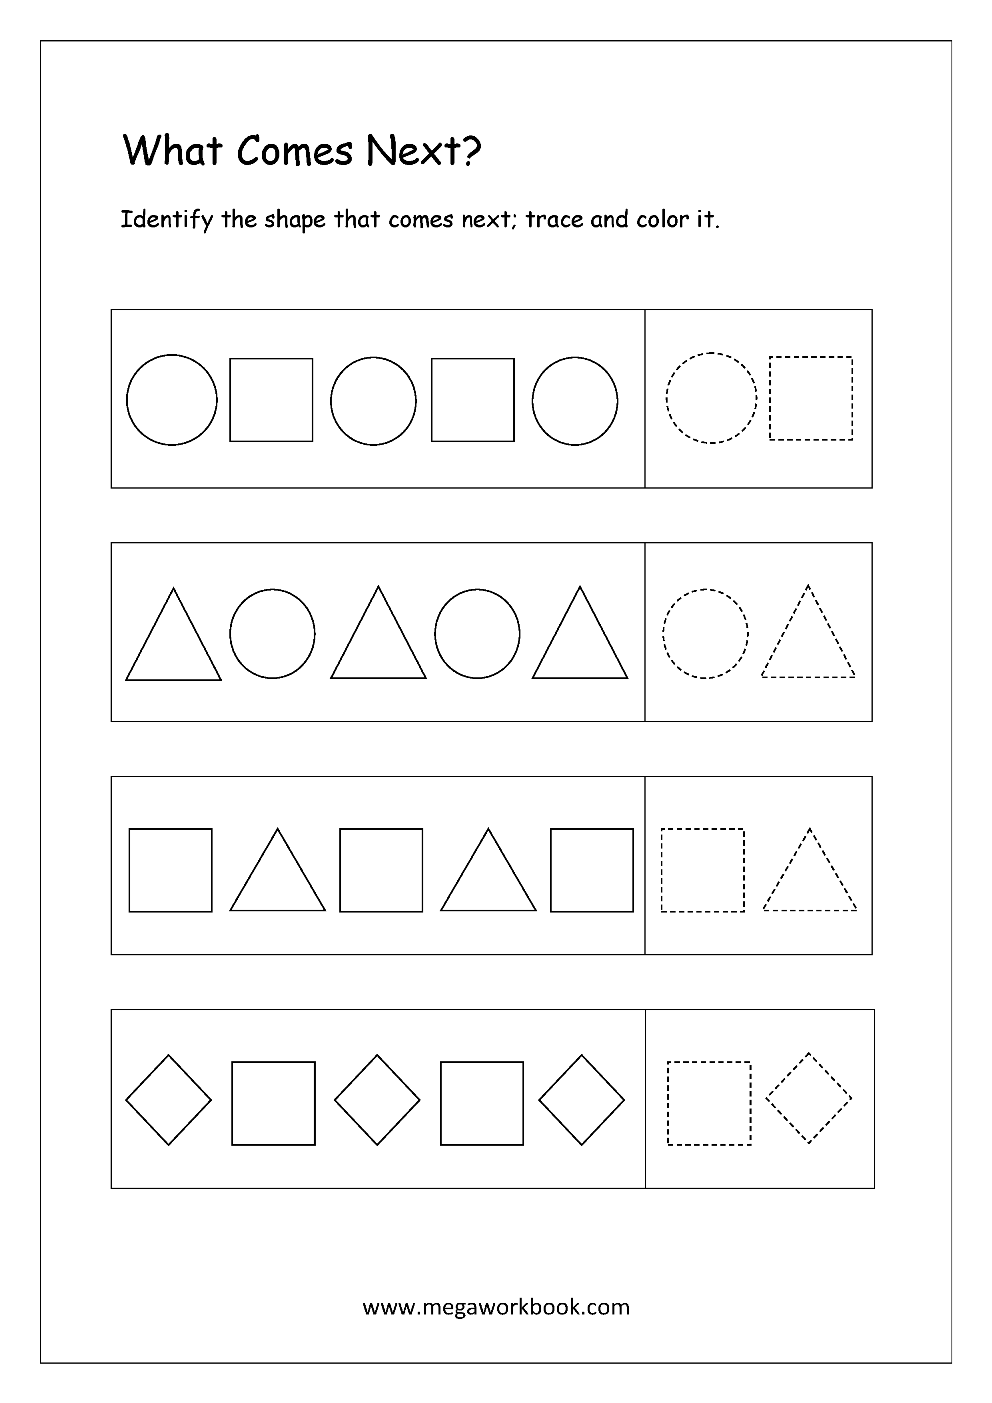 free printable pattern identification worksheets what comes next megaworkbook. Black Bedroom Furniture Sets. Home Design Ideas